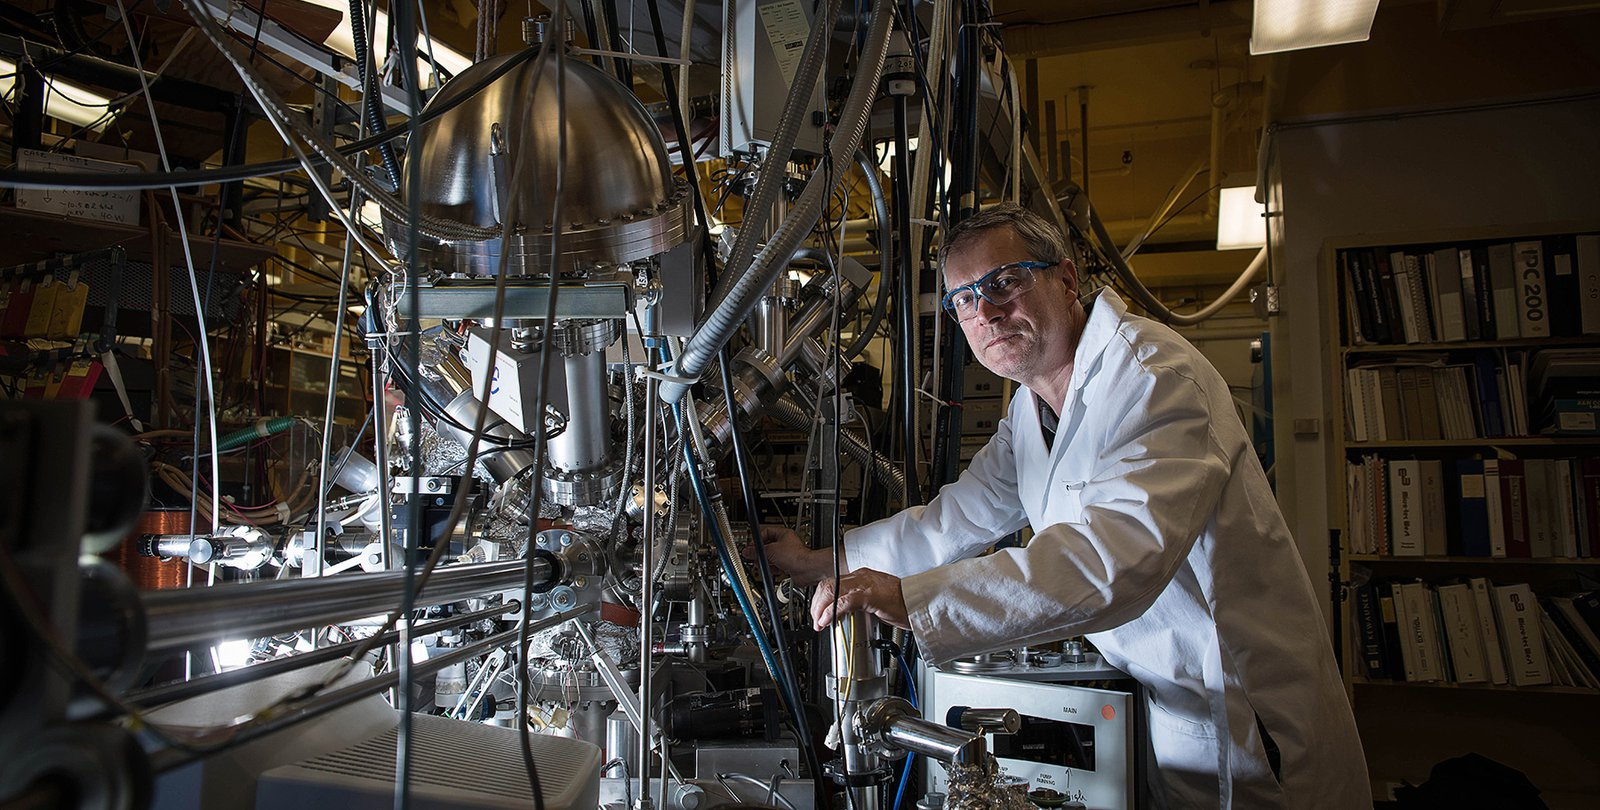 Caltech reactor could convert CO2 into breathable oxygen for